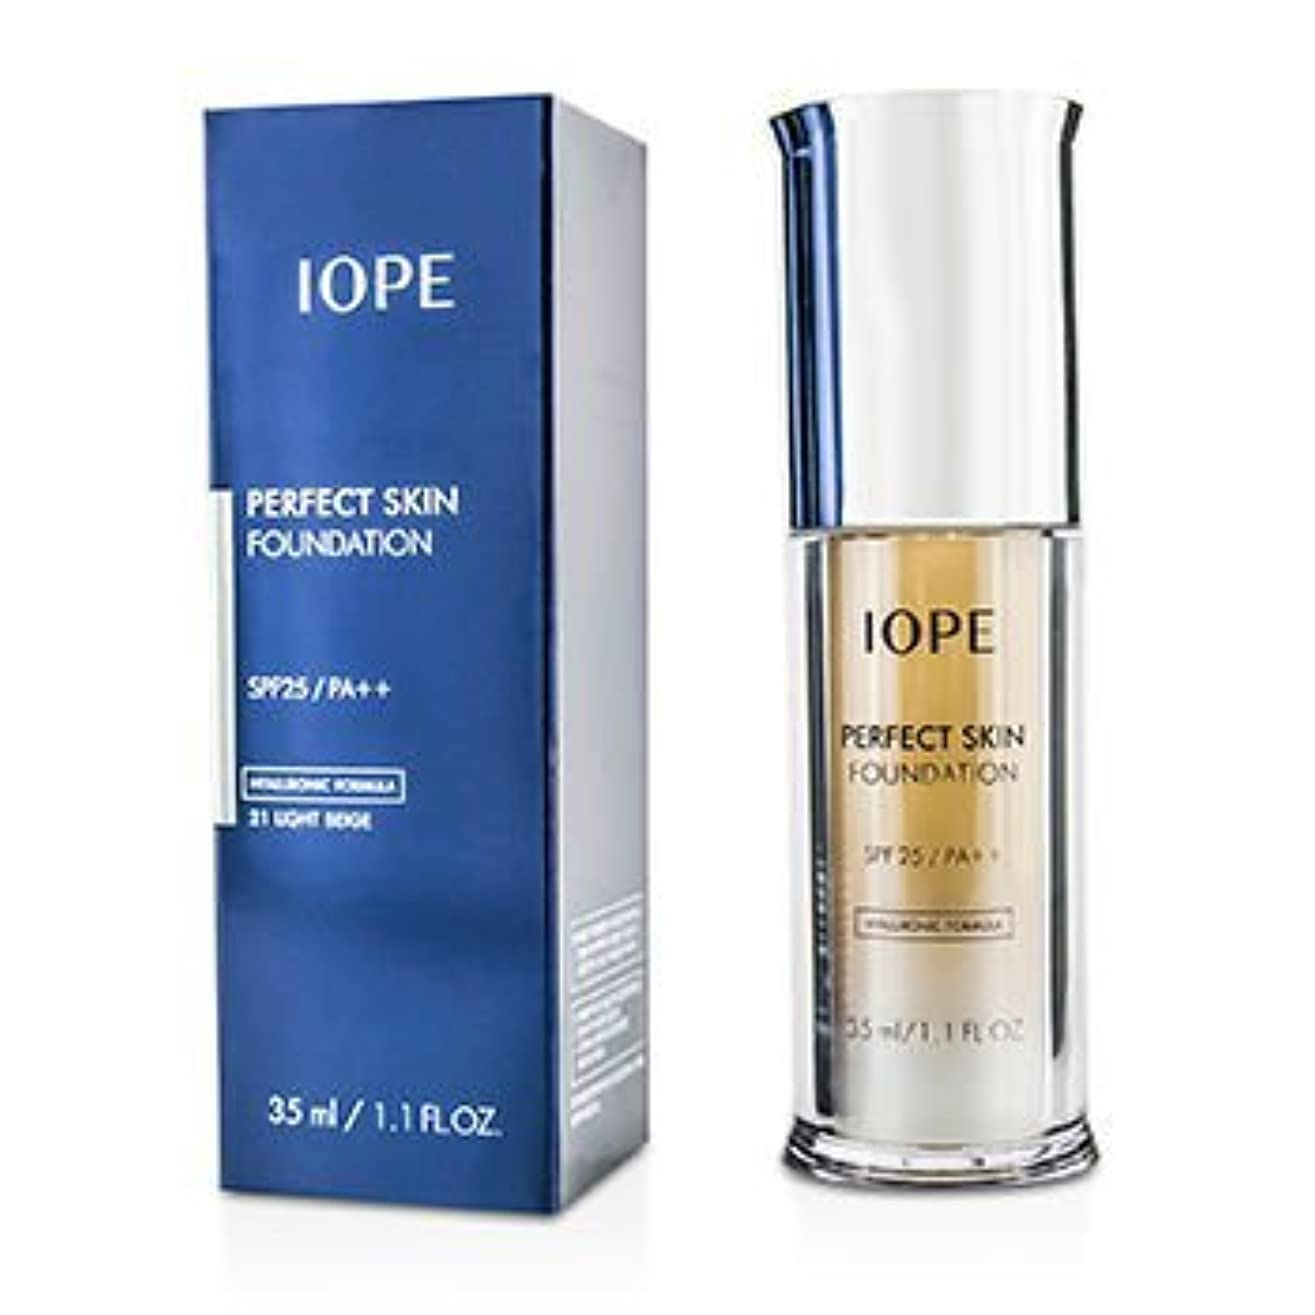 各そよ風やがて[IOPE] Perfect Skin Foundation SPF25 - # 21 Light Beige 35ml/1.1oz